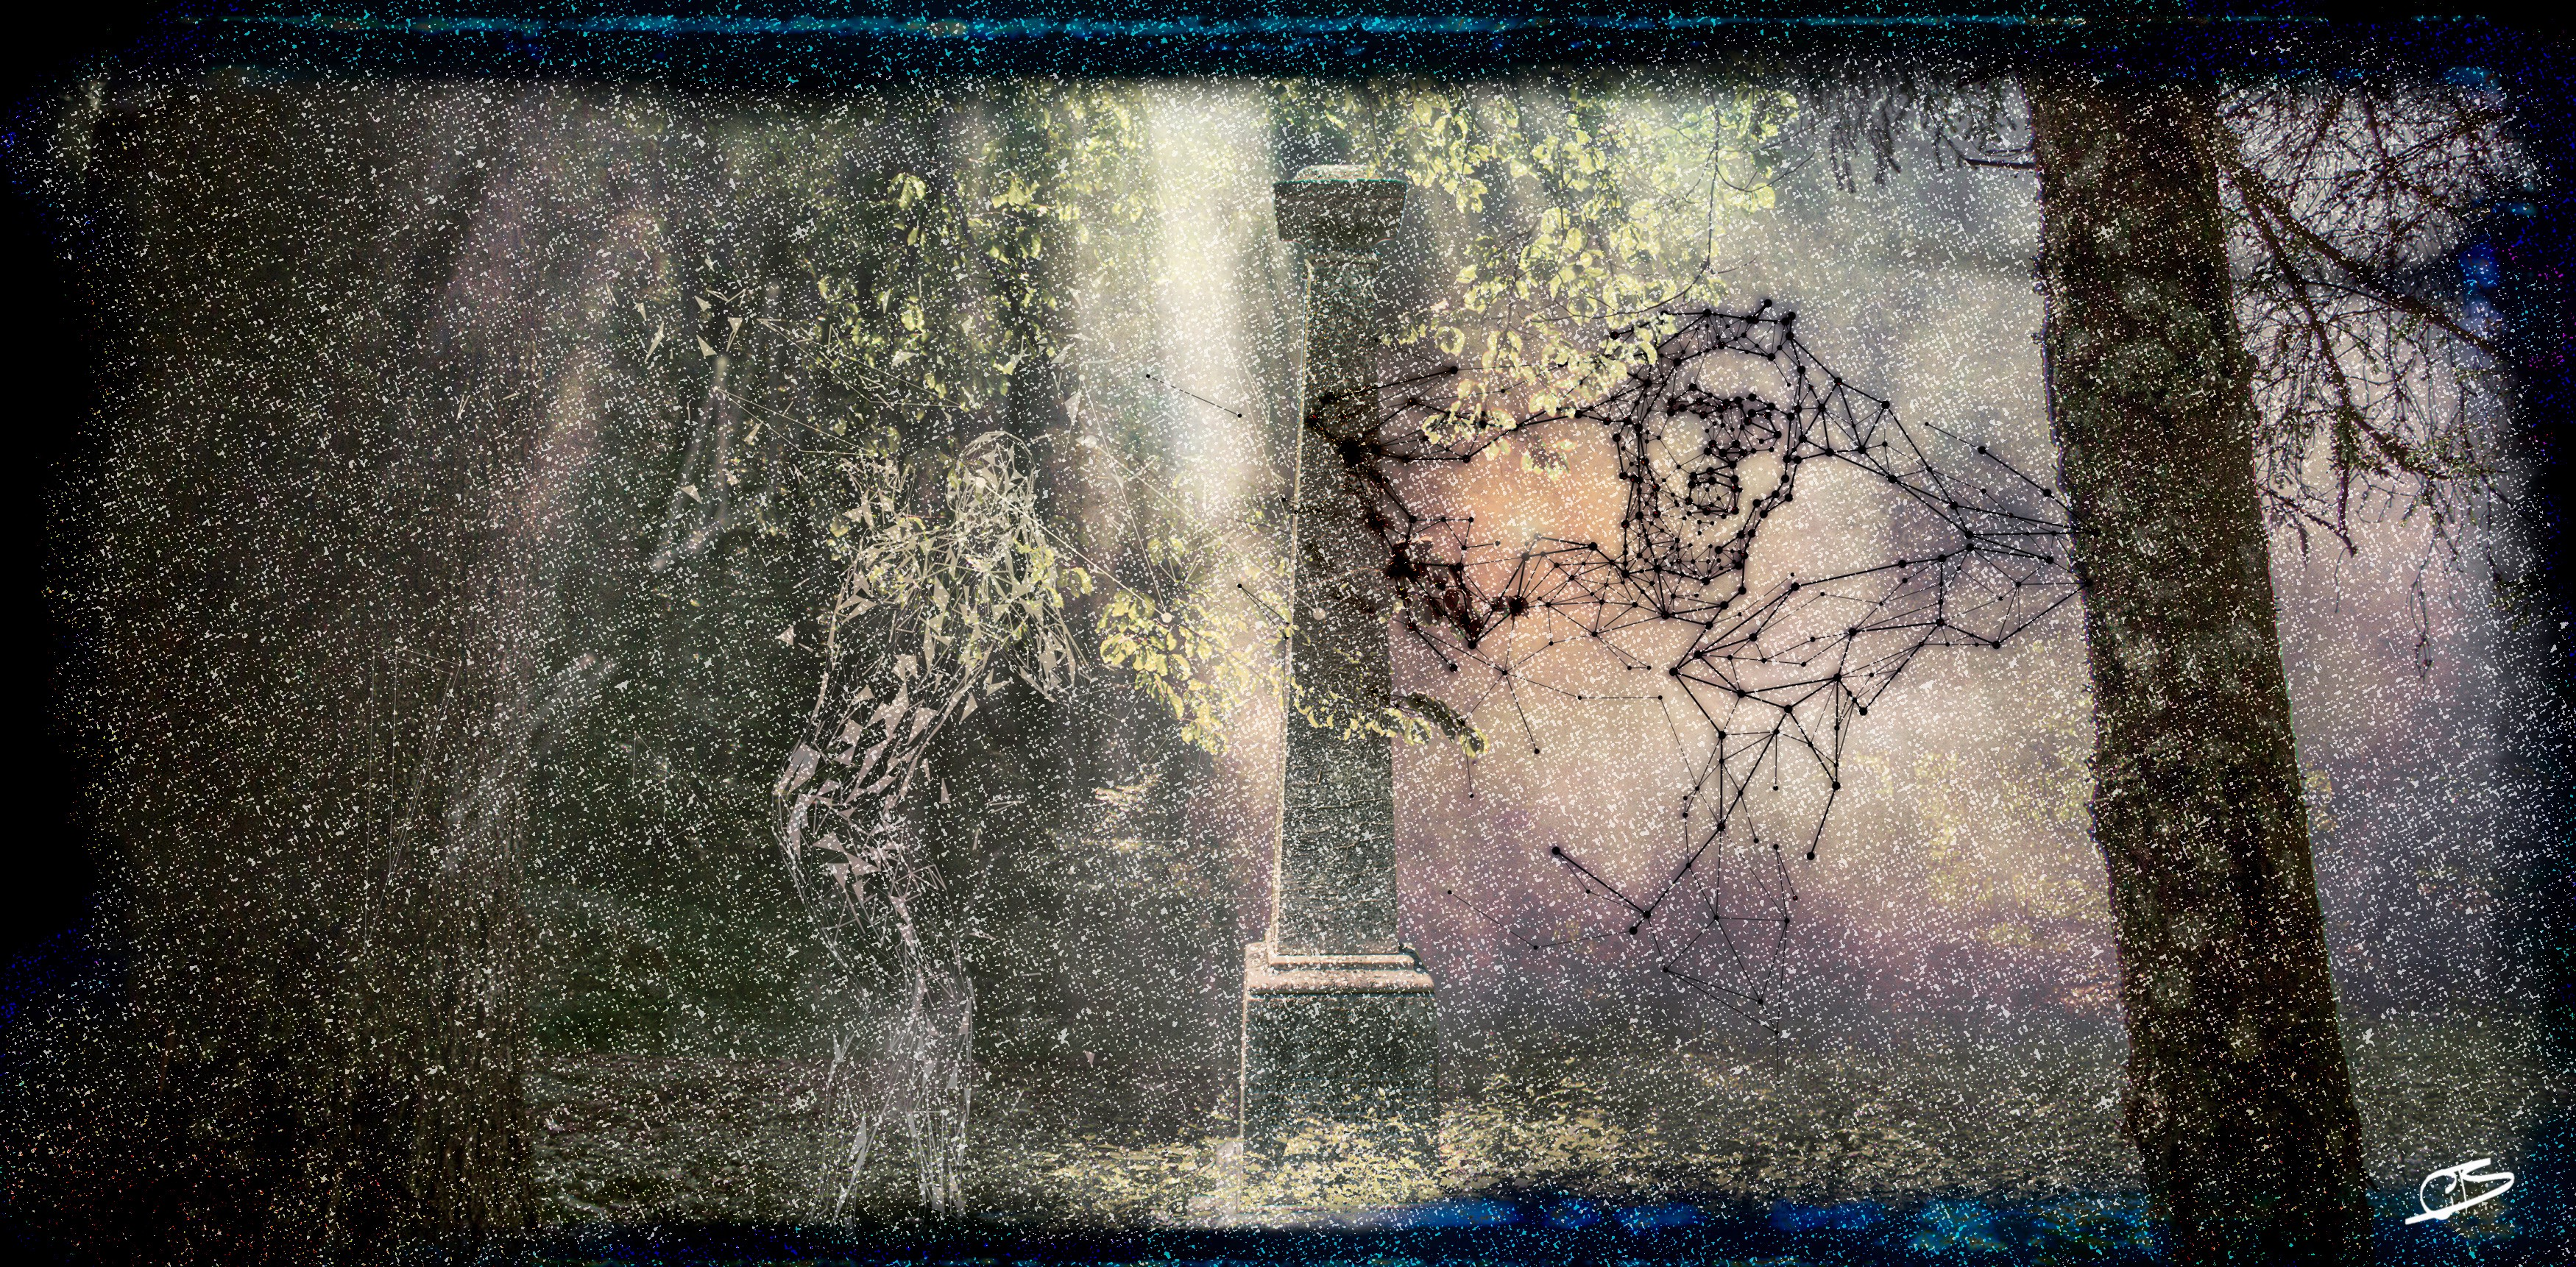 Two digital ghosts screaming near a grave stone.